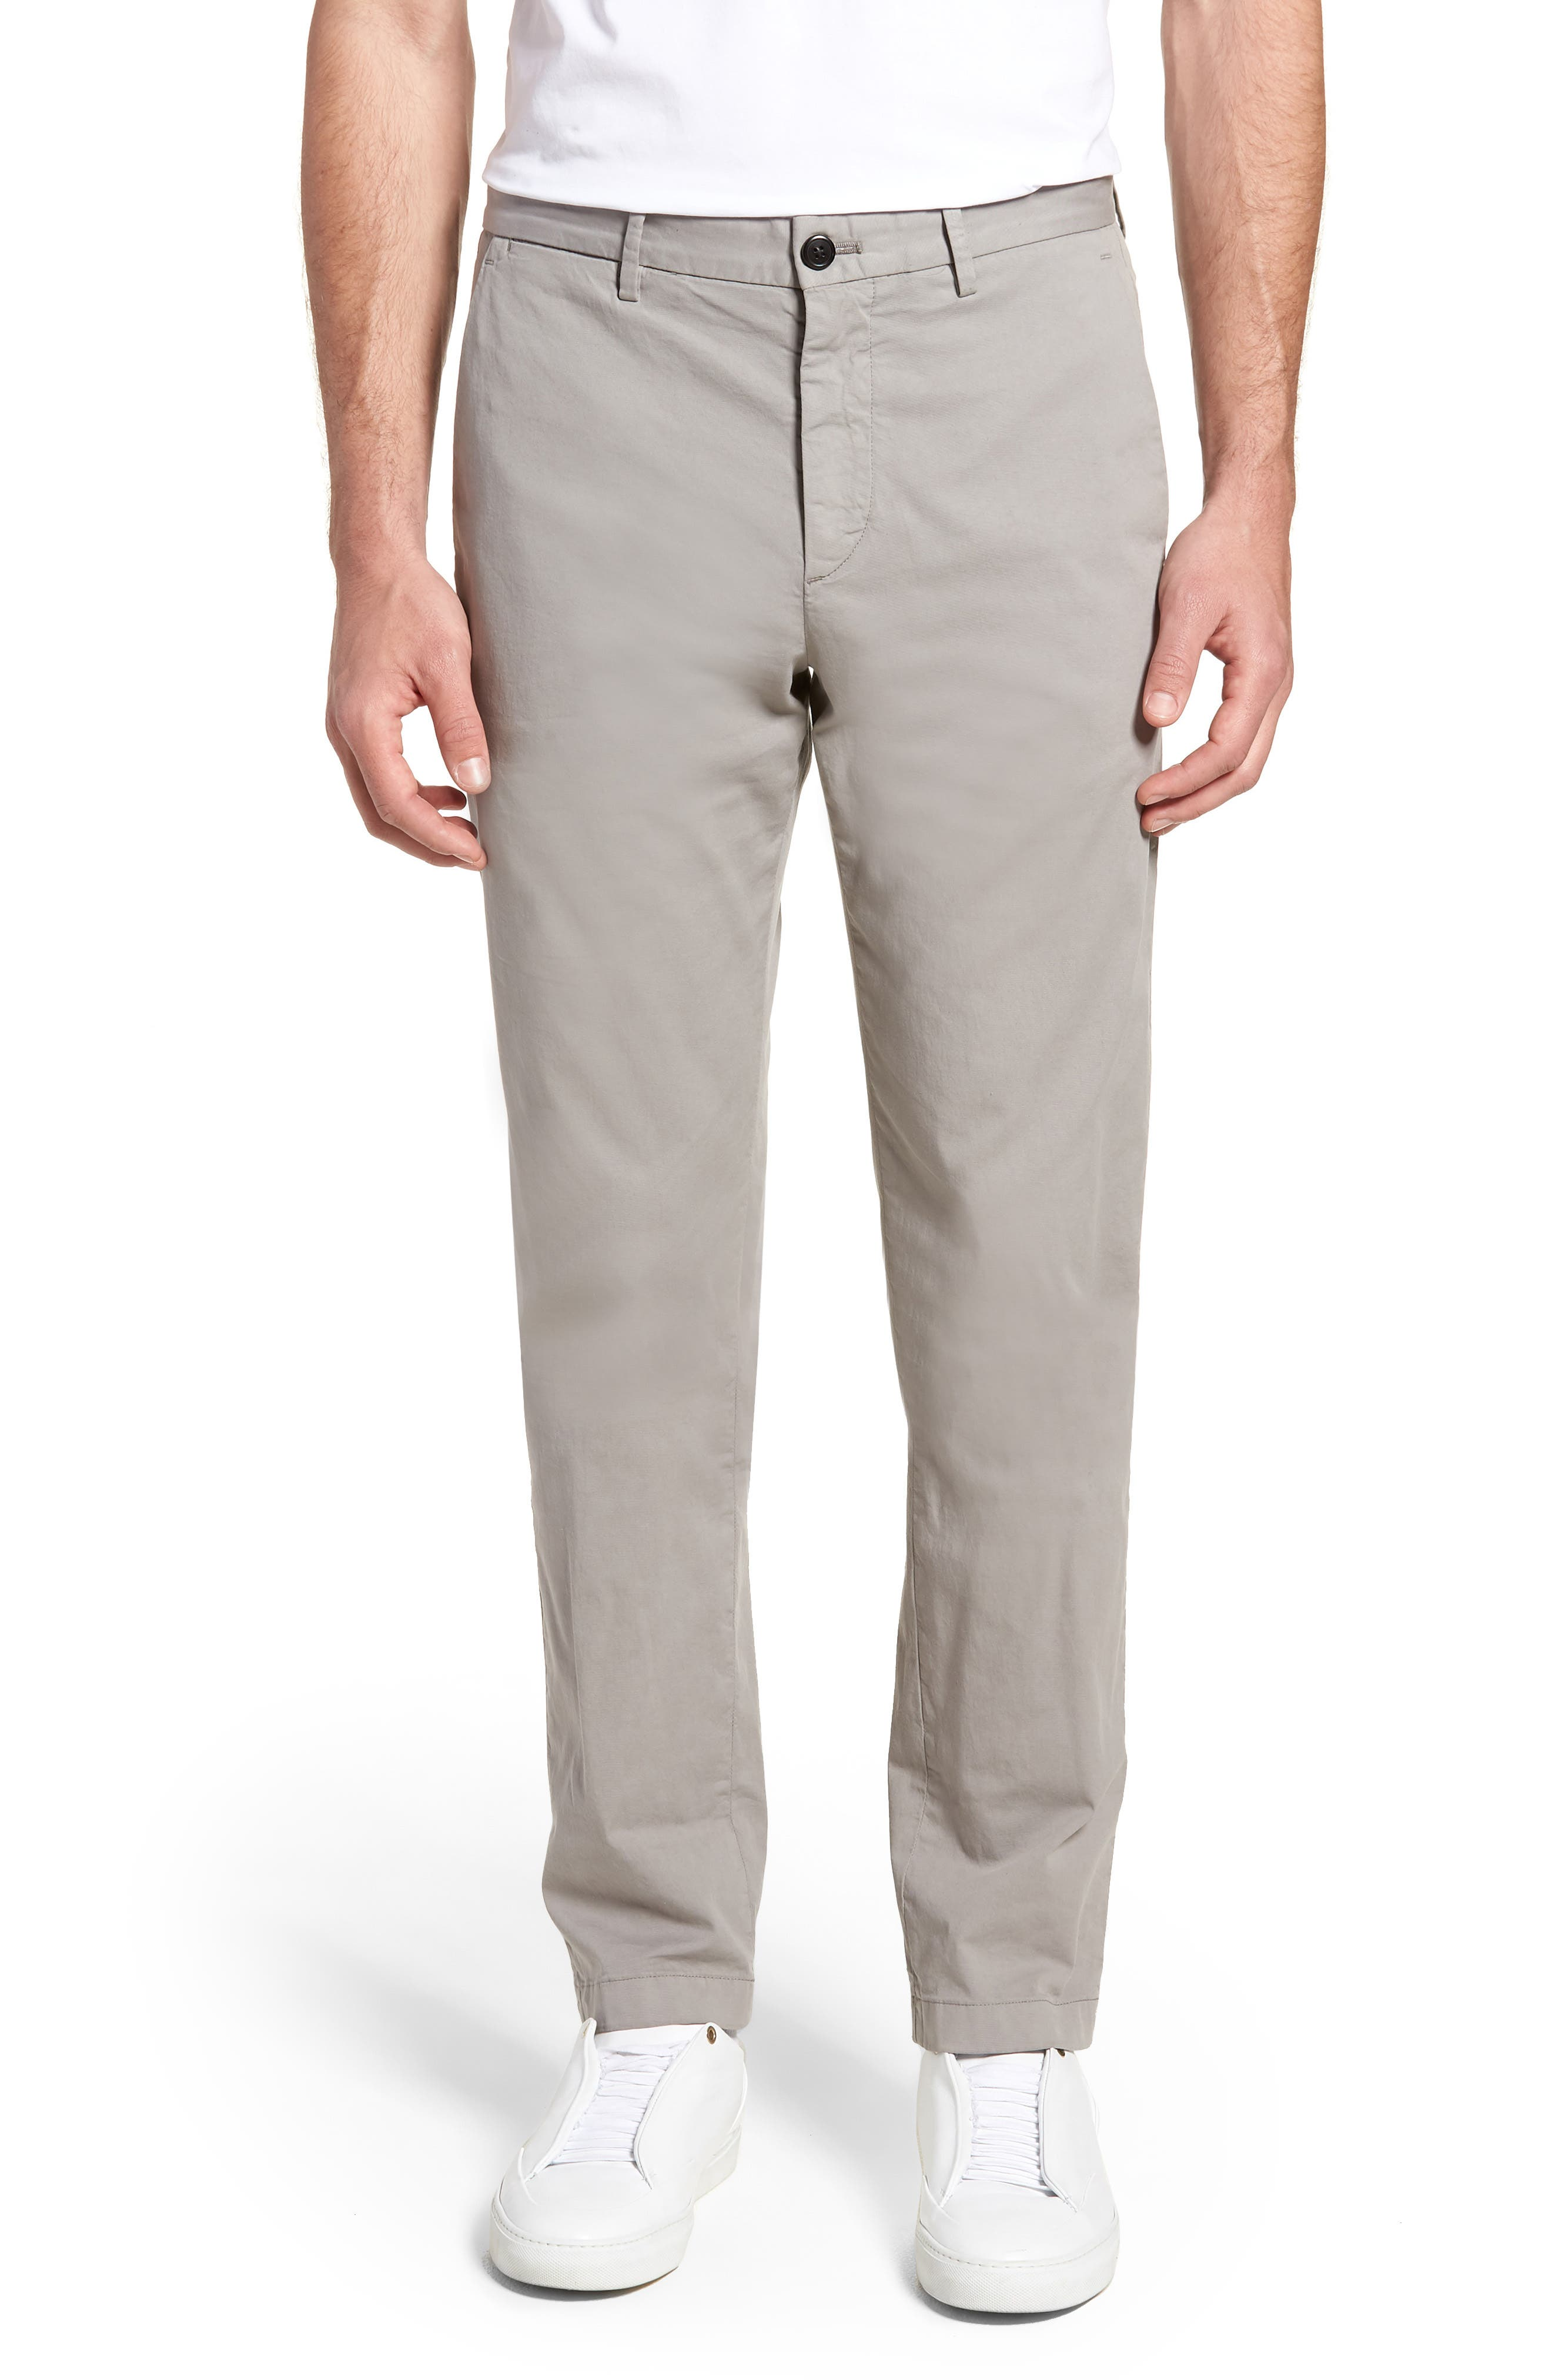 Zaine Patton Flat Front Stretch Solid Cotton Pants,                         Main,                         color, DIM